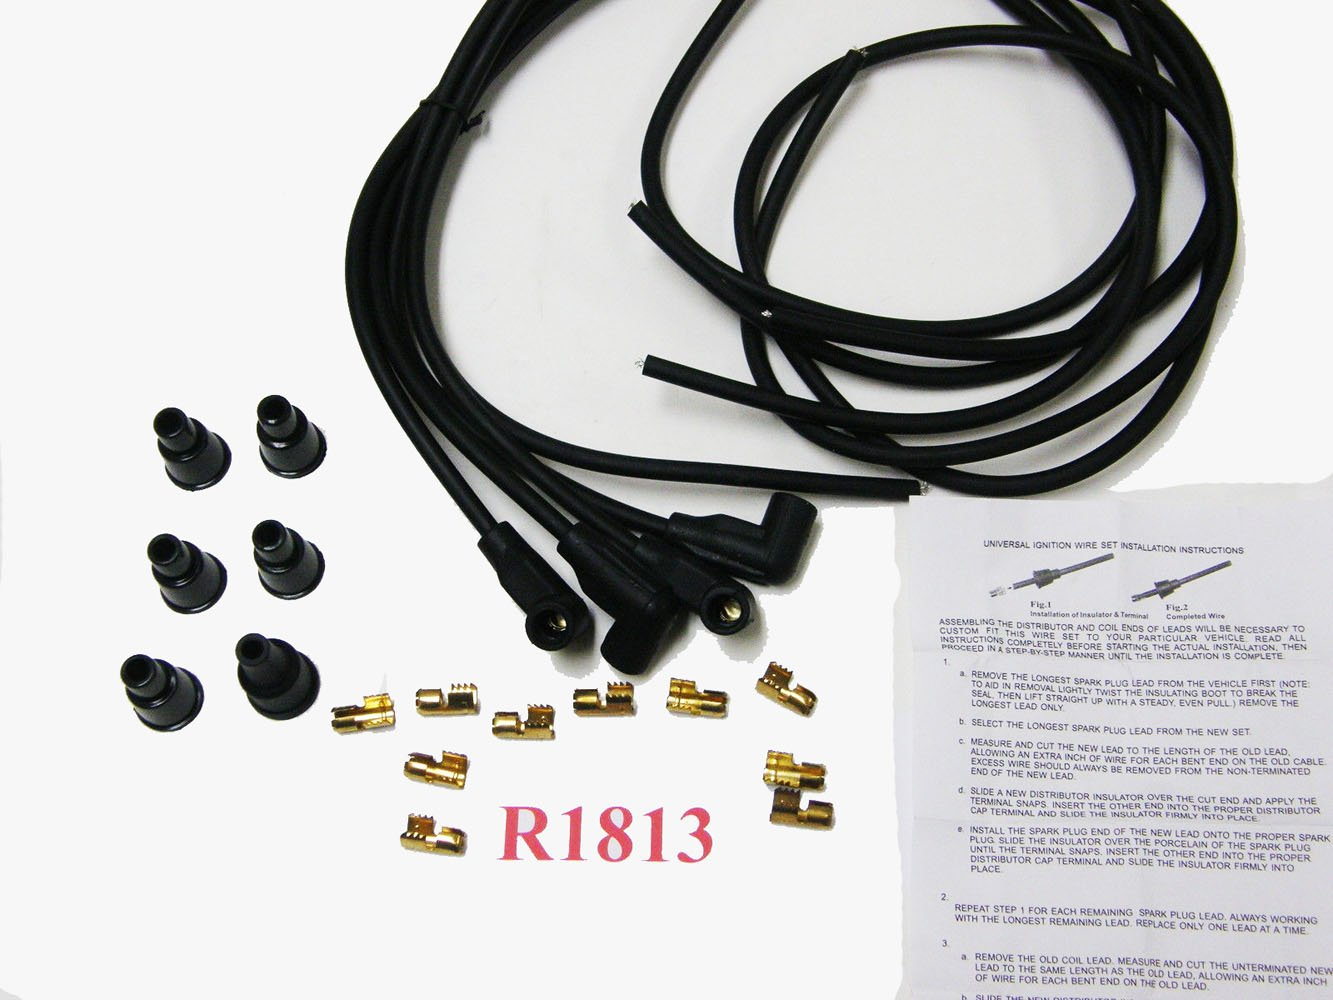 R1813 Spark Plug Wire Set For 4 Cyl Gas Tractors Wiring Of A Industrial Scientific